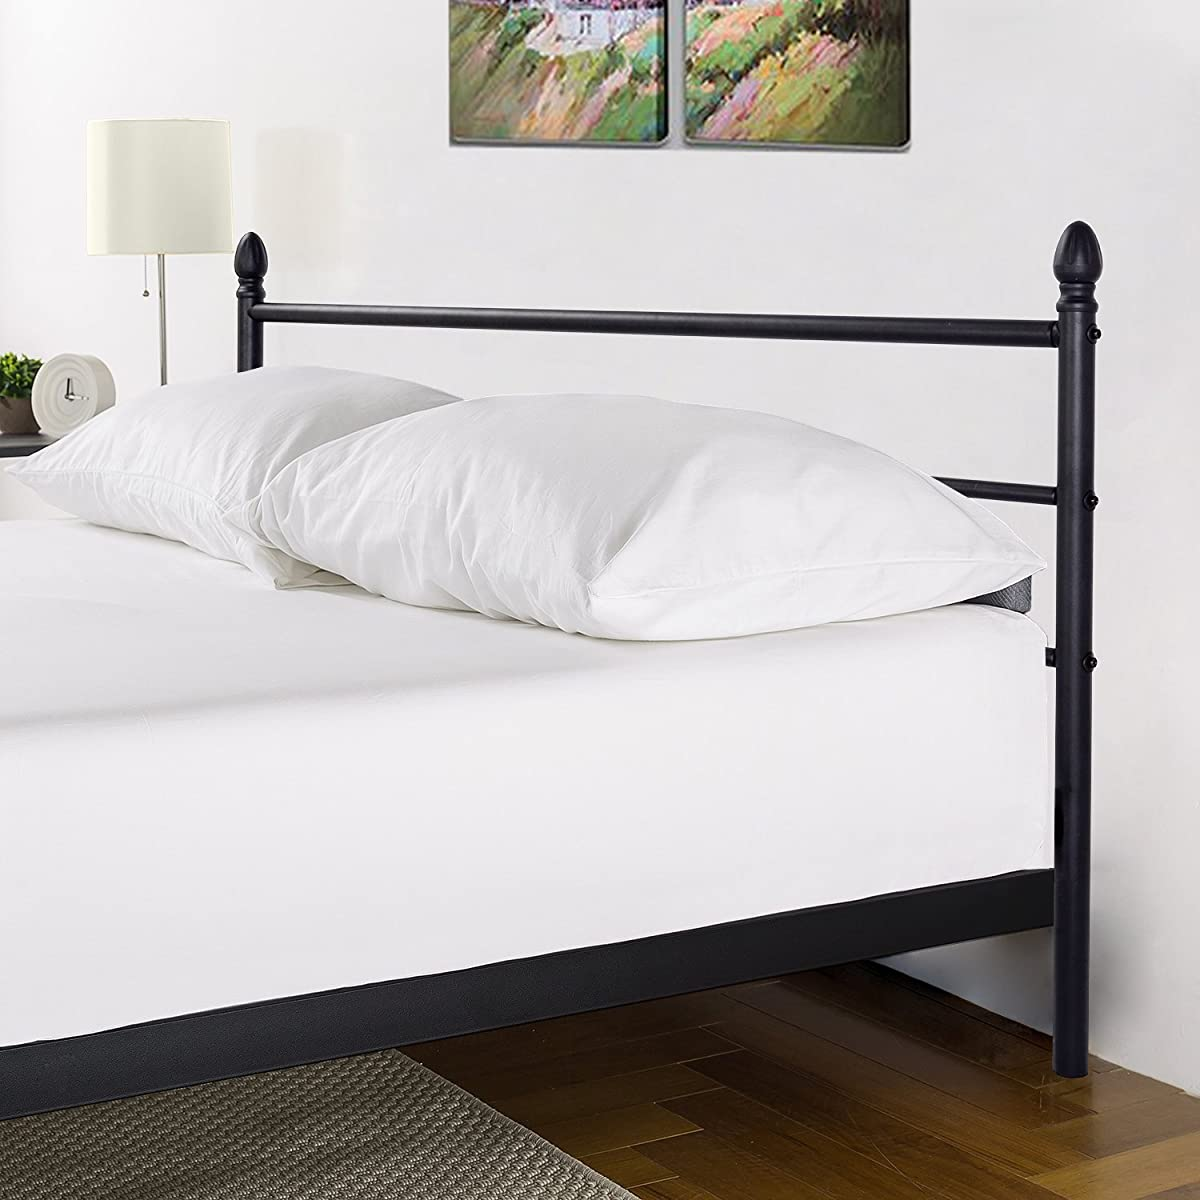 Reinforced Metal Bed Frame Queen Size, VECELO Platform Mattress Foundation / Box Spring Replacement with Headboard & Footboard